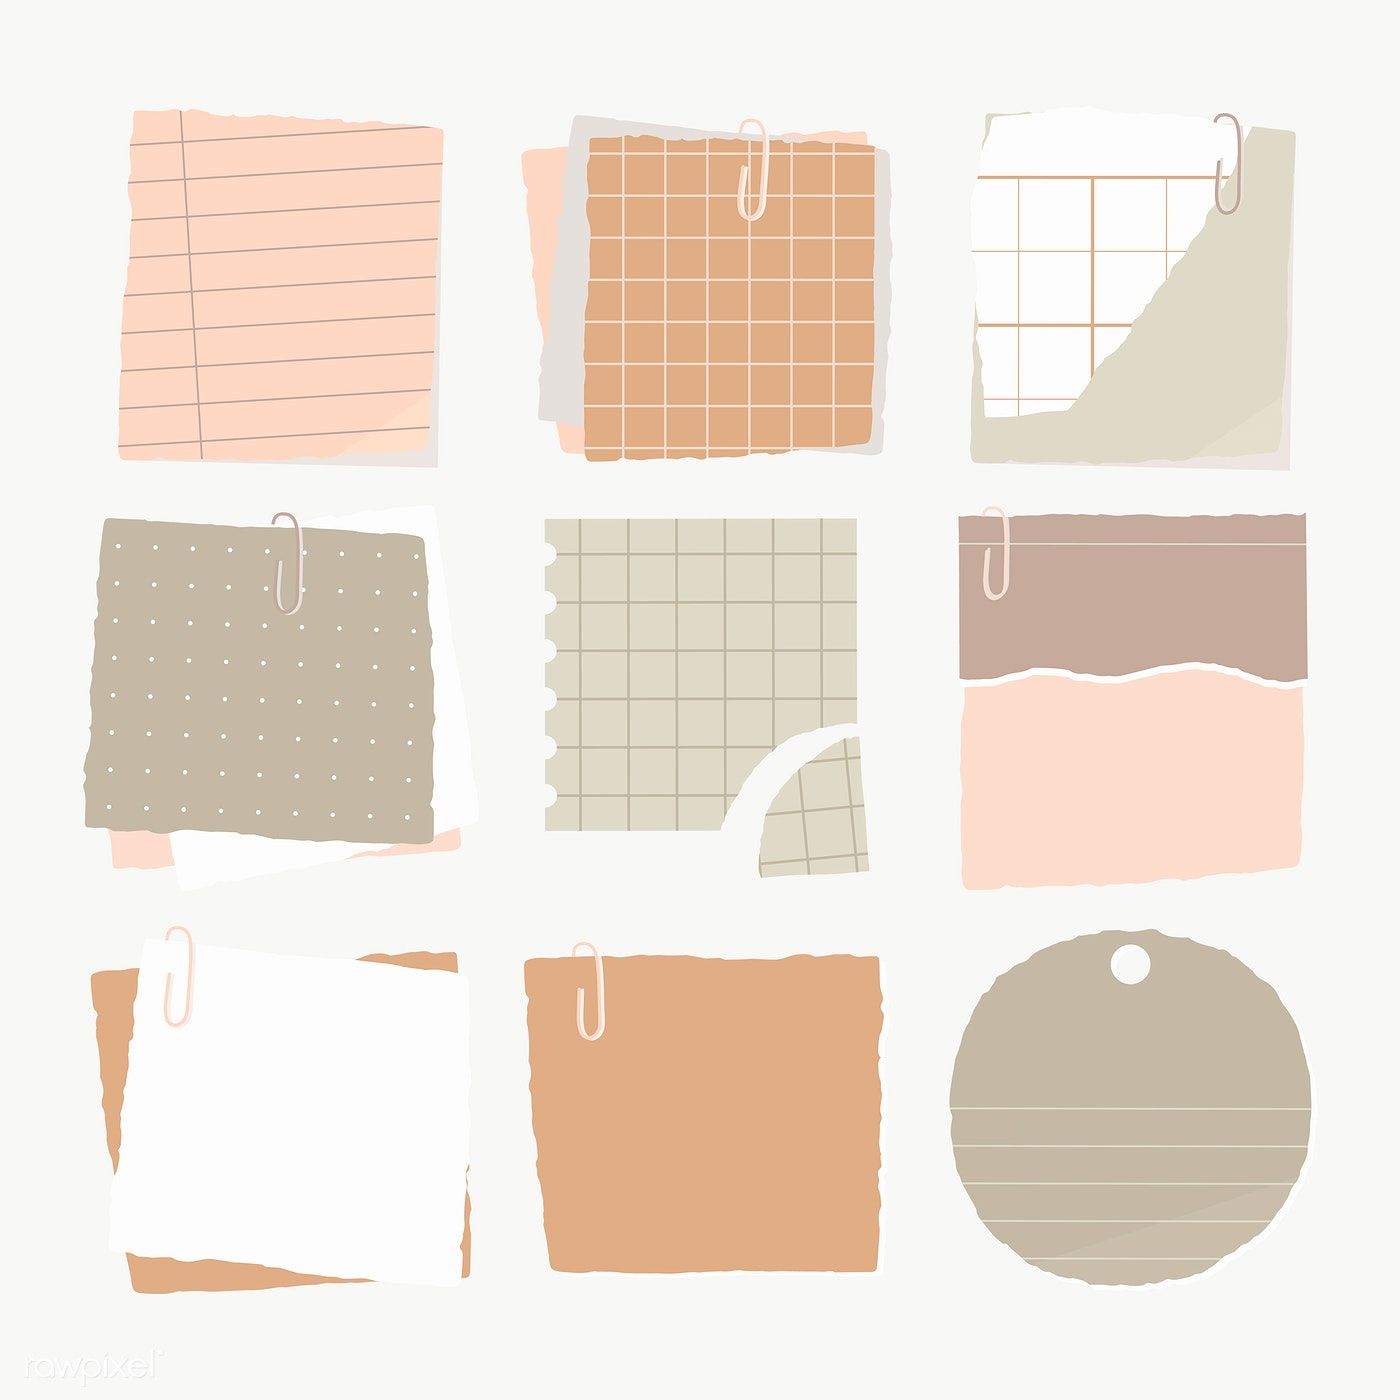 Torn Paper Note Collection Social Ads Template Transparent Png Free Image By Rawpixel Com Manotang Bullet Journal Stickers Note Paper Journal Stickers